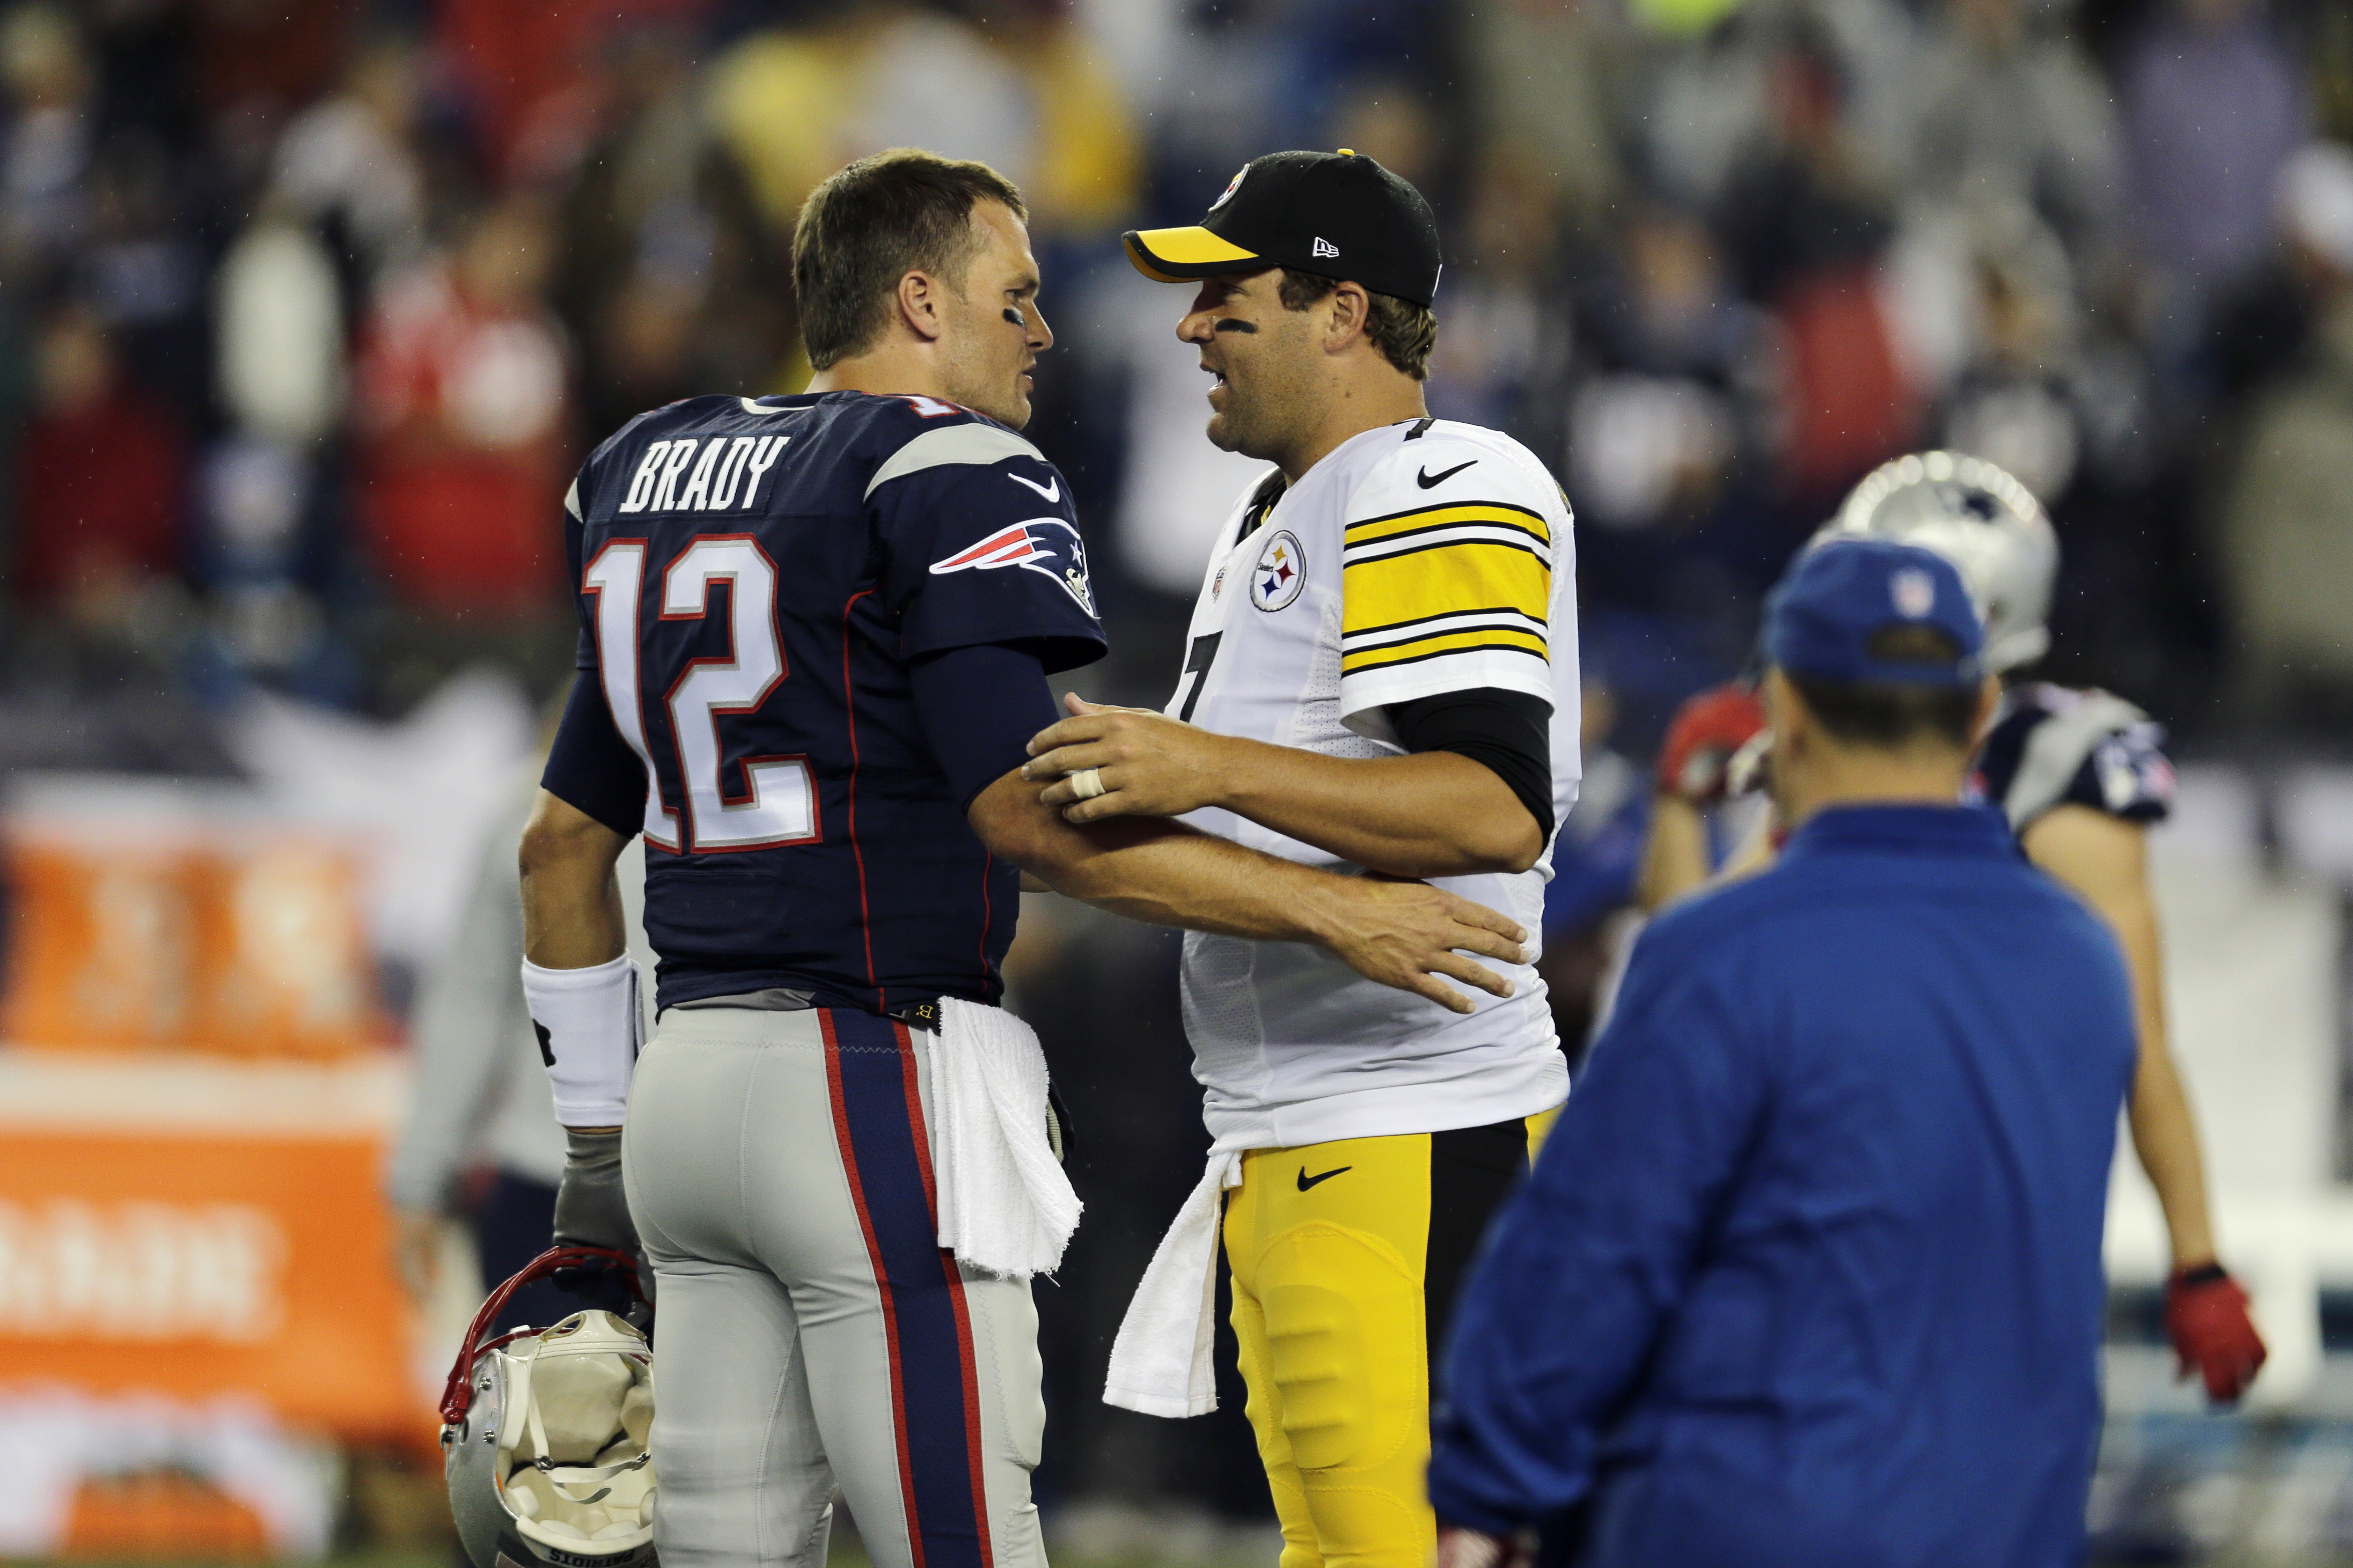 fa3c1aca3 Rivalry with Patriots helped fuel Ben Roethlisberger s fire - The Boston  Globe